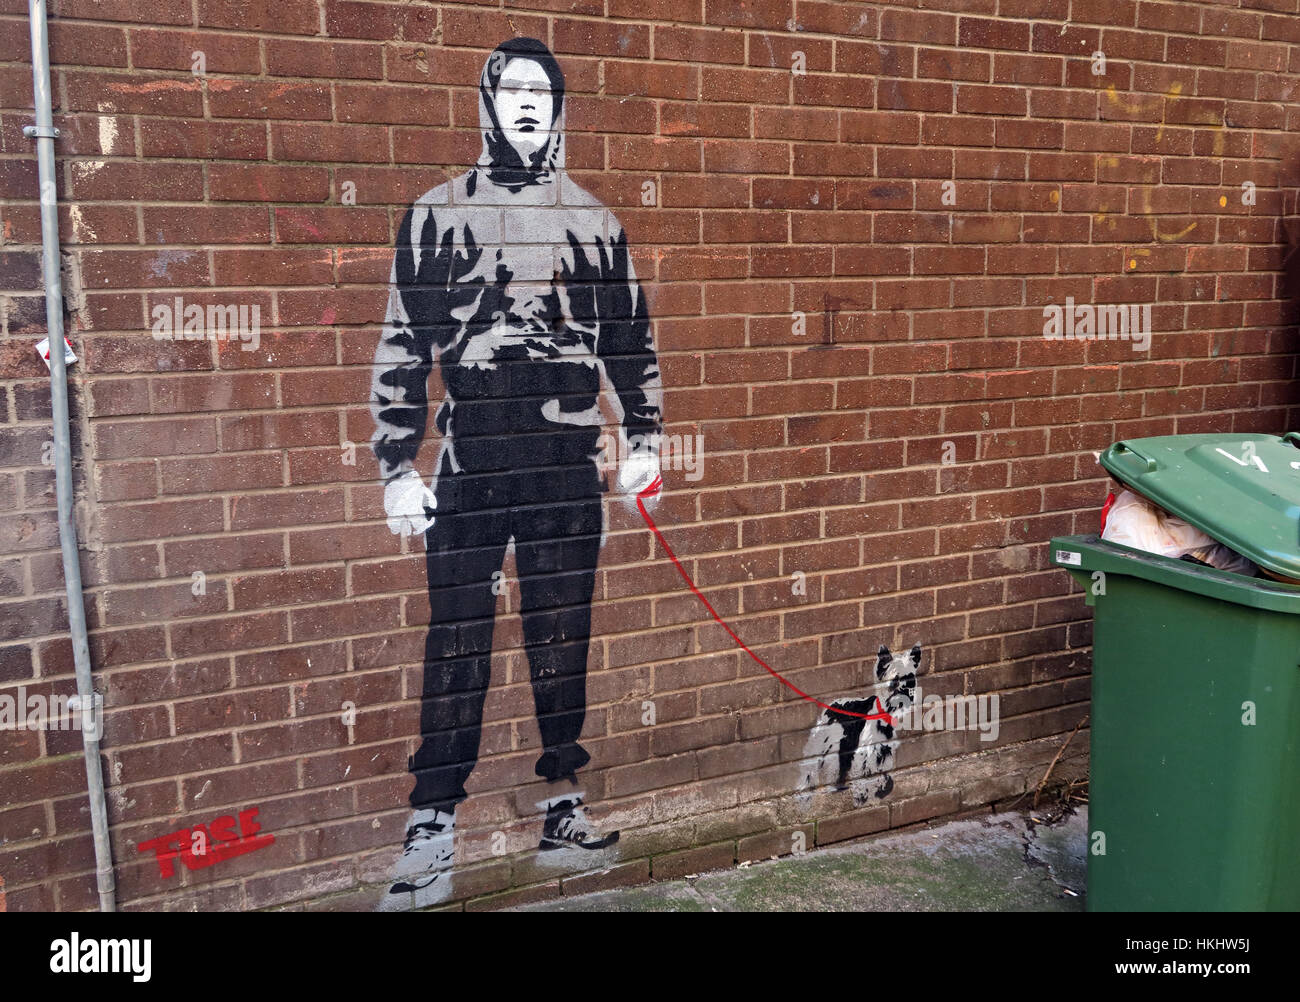 Boy walking dog stencil,Glasgow Queen St, Scotland - Stock Image